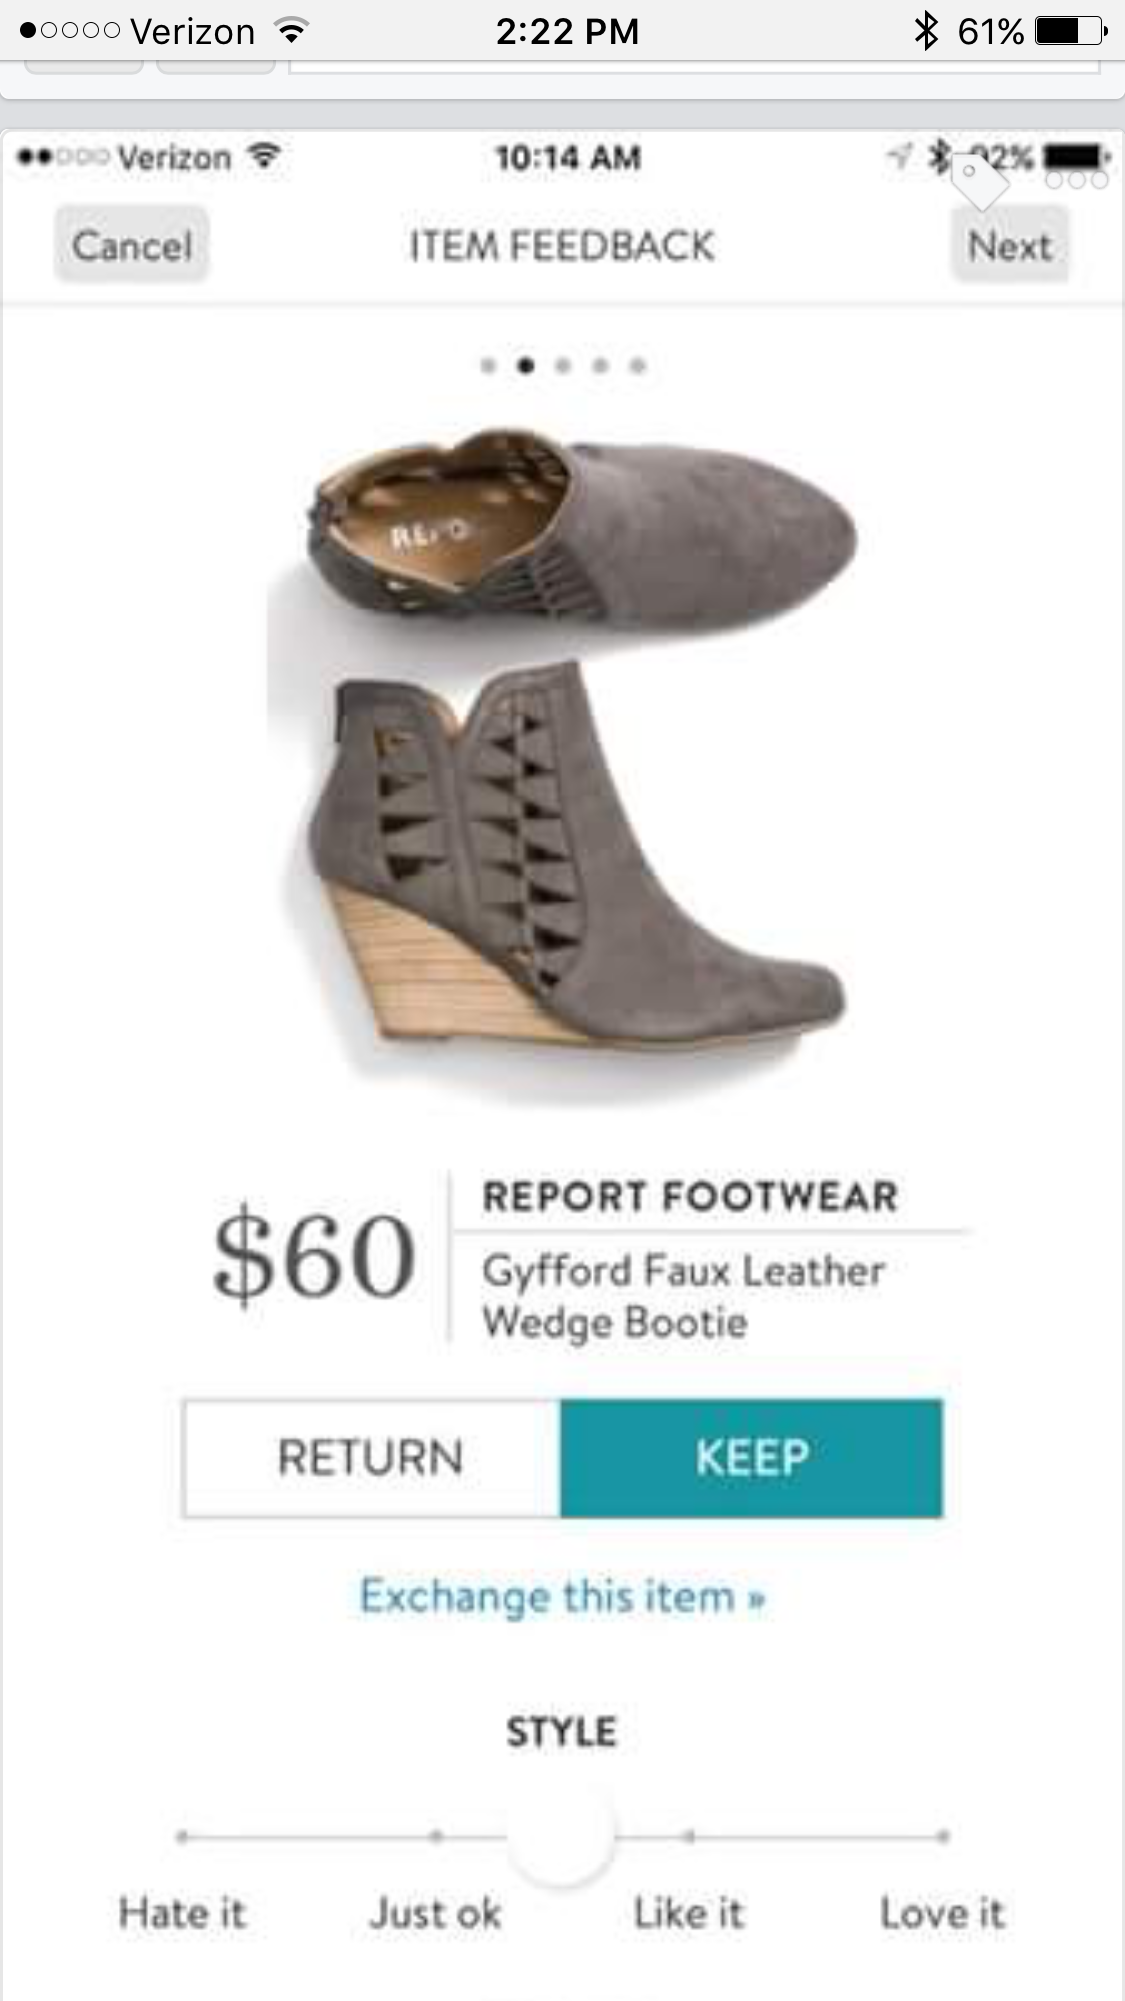 62c67e8a8e8d STYLIST Do these come in gray or black? (they look olive in this photo)